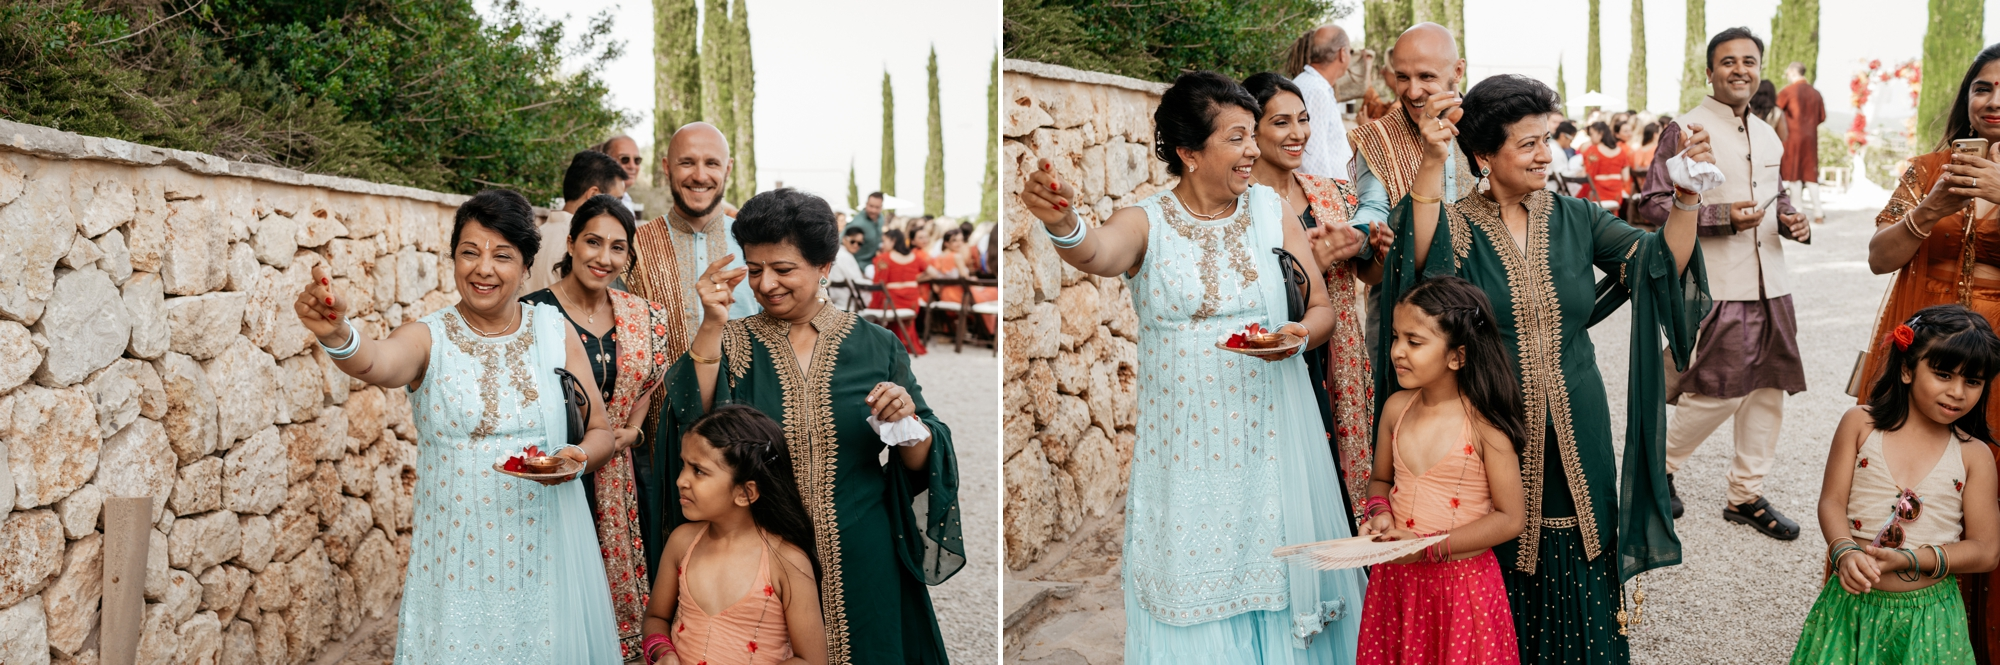 natural wedding photography mallorca boda hindu 0074 1